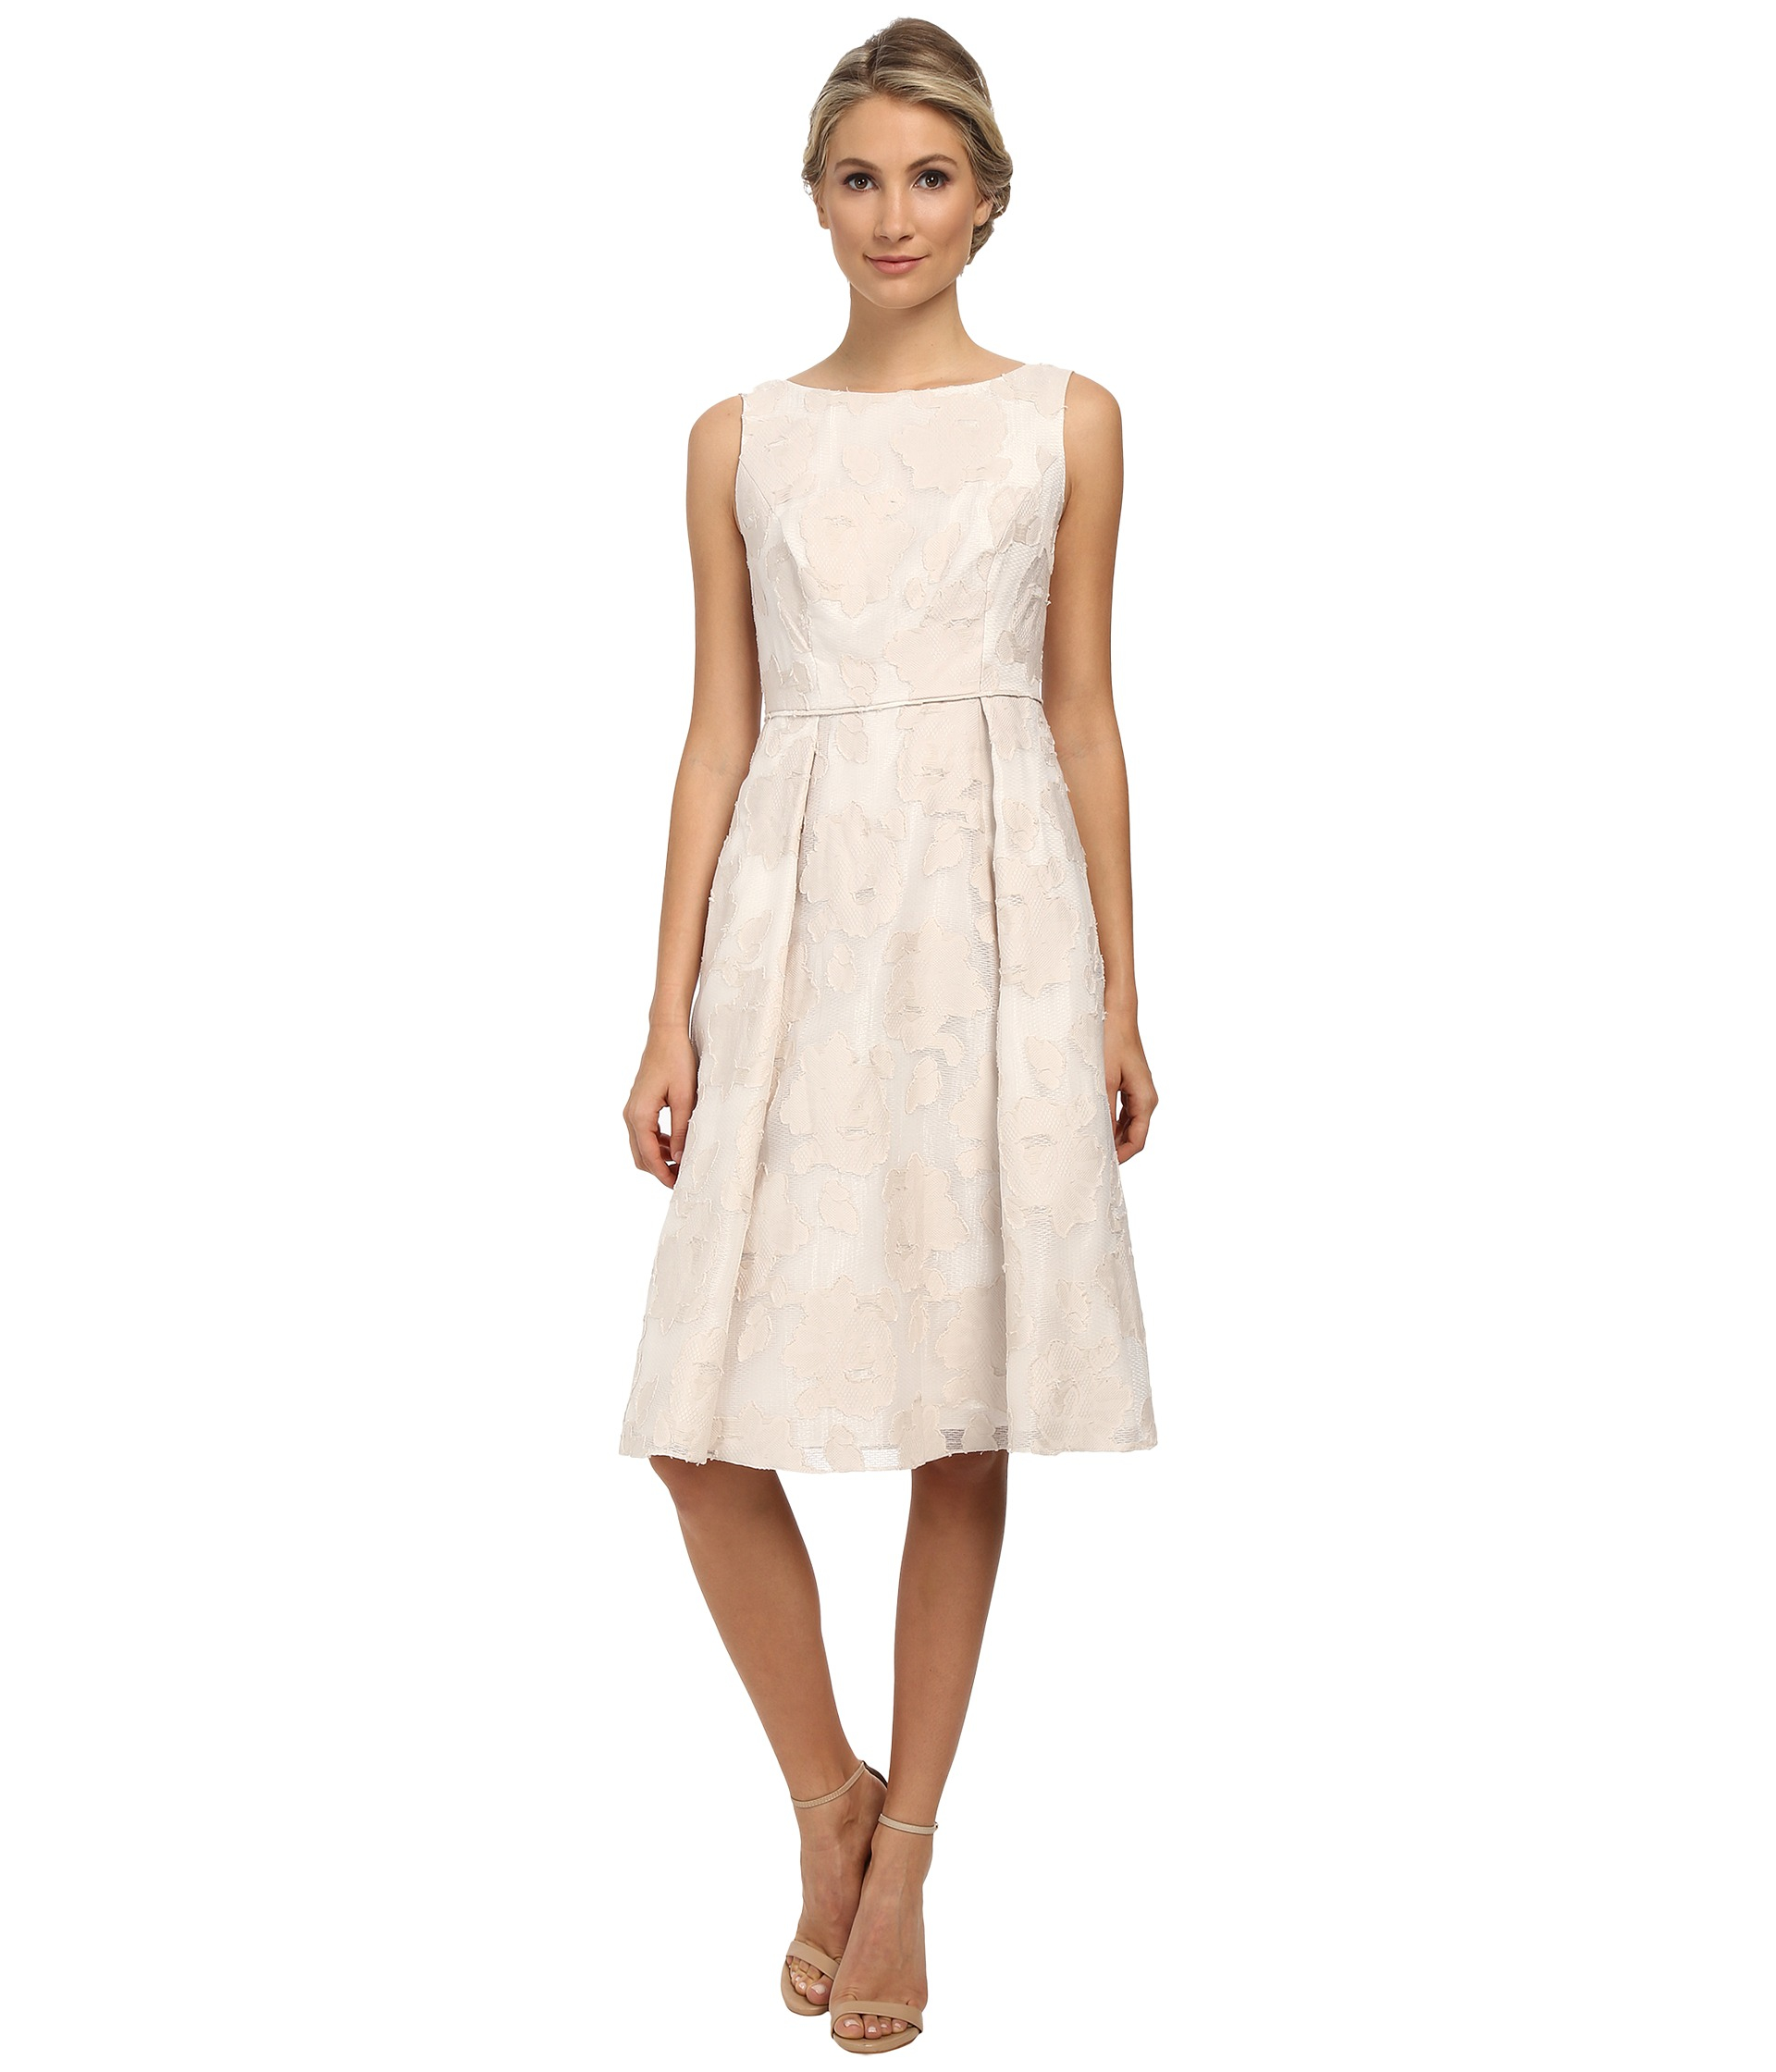 614d685bc52 Lyst - Adrianna Papell Burnout Netting Classic Pleat Dress in Natural